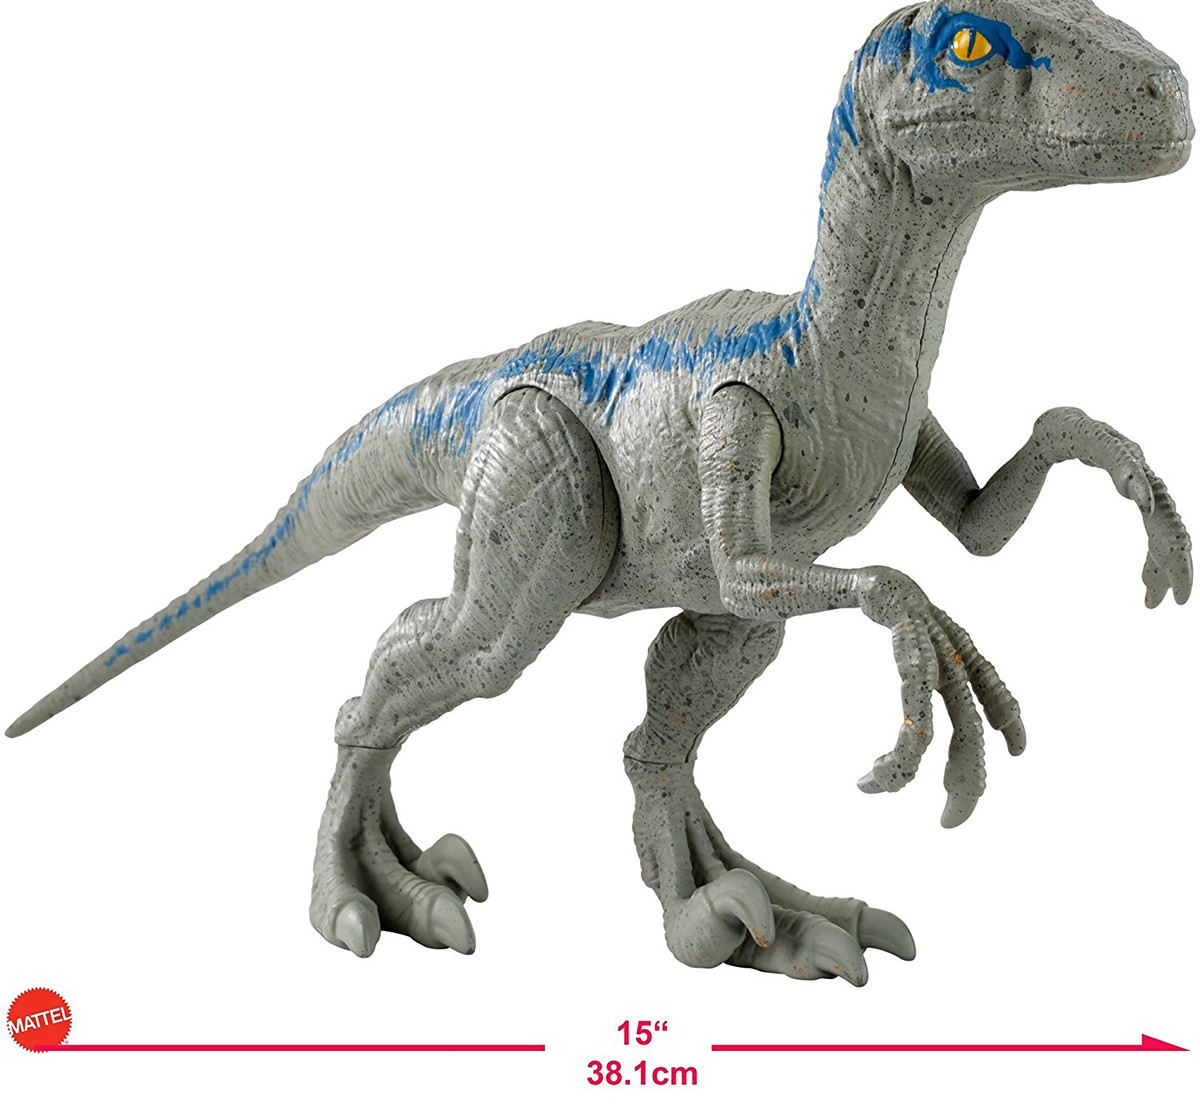 Jurassic World Action Figures Dino Action Figures for Boys age 3Y+